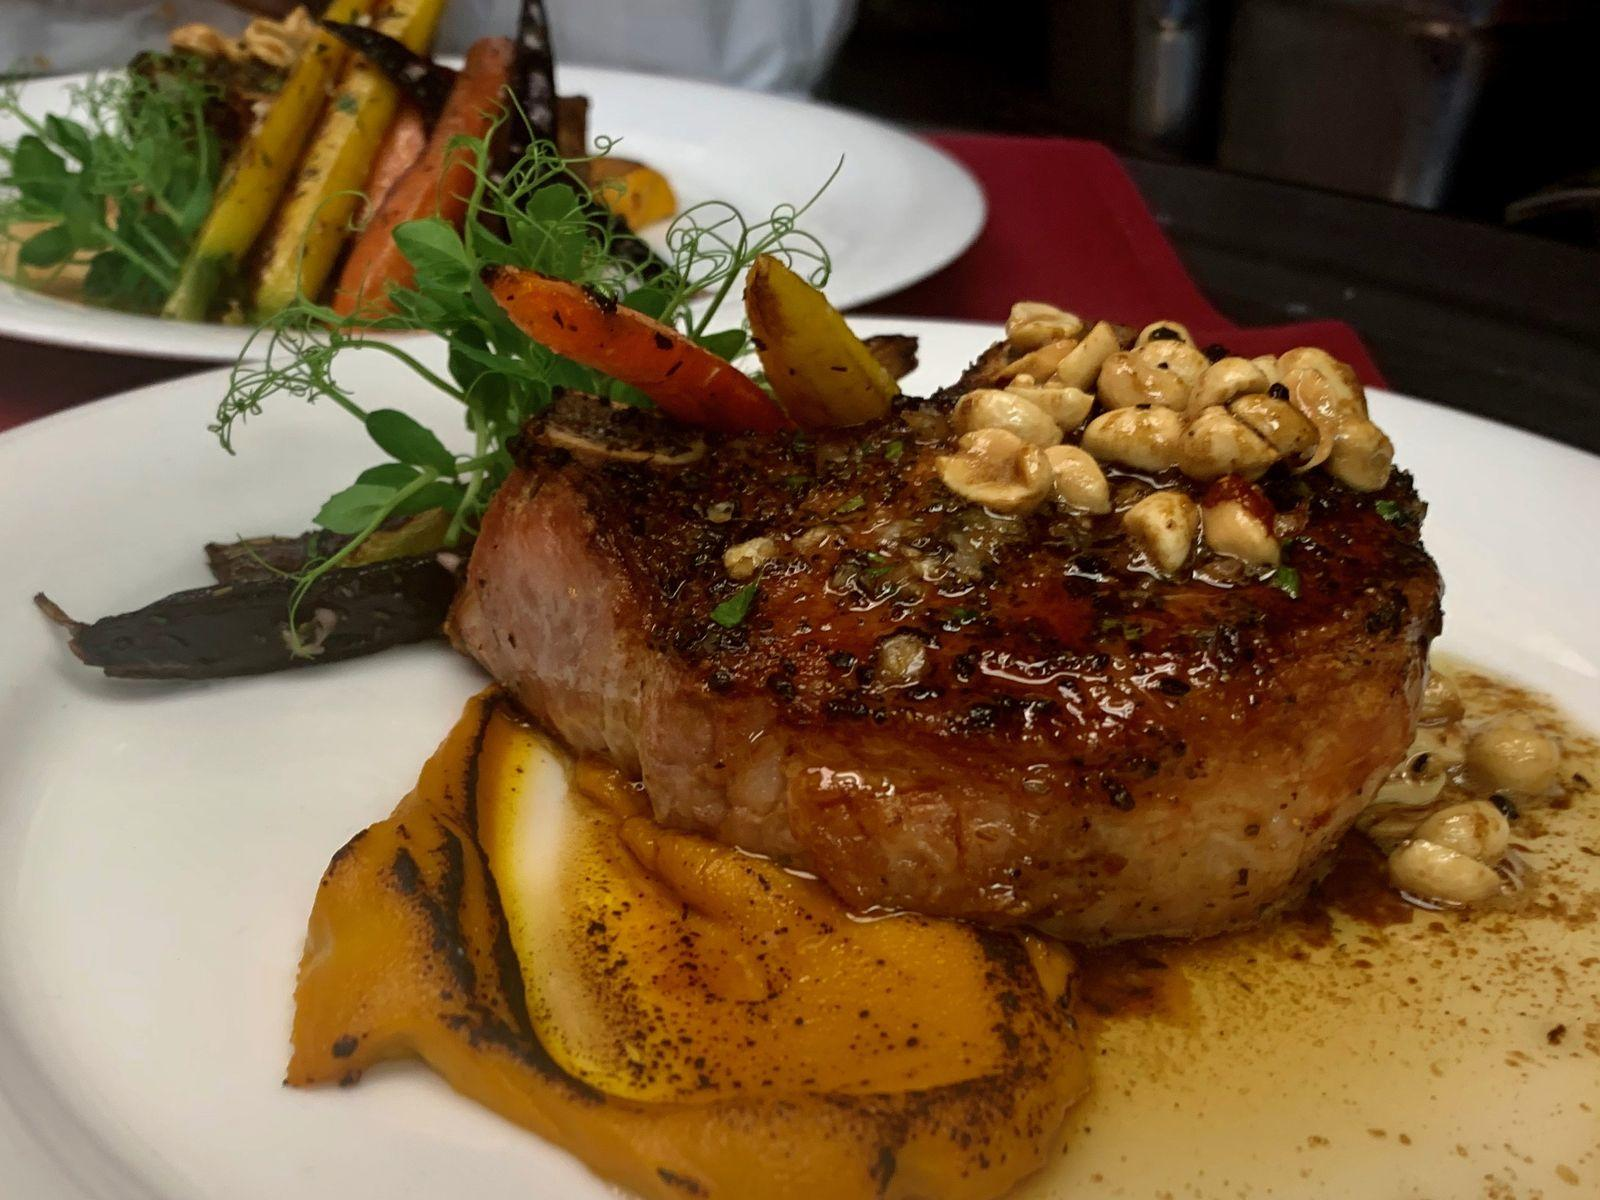 delicious steak dish with side of vegetables